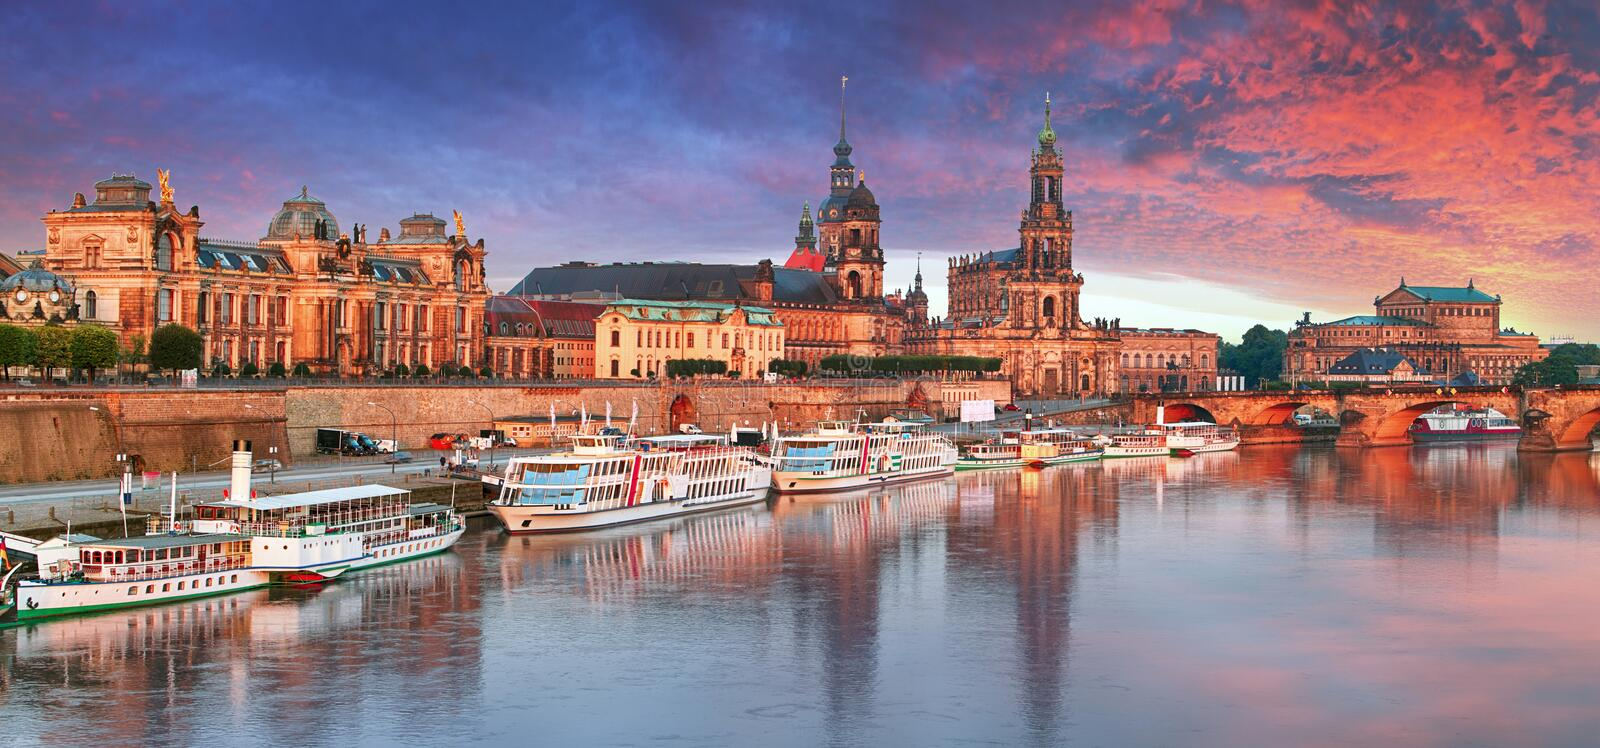 Dresden, Germany old town skyline on the Elbe River.  royalty free stock photo